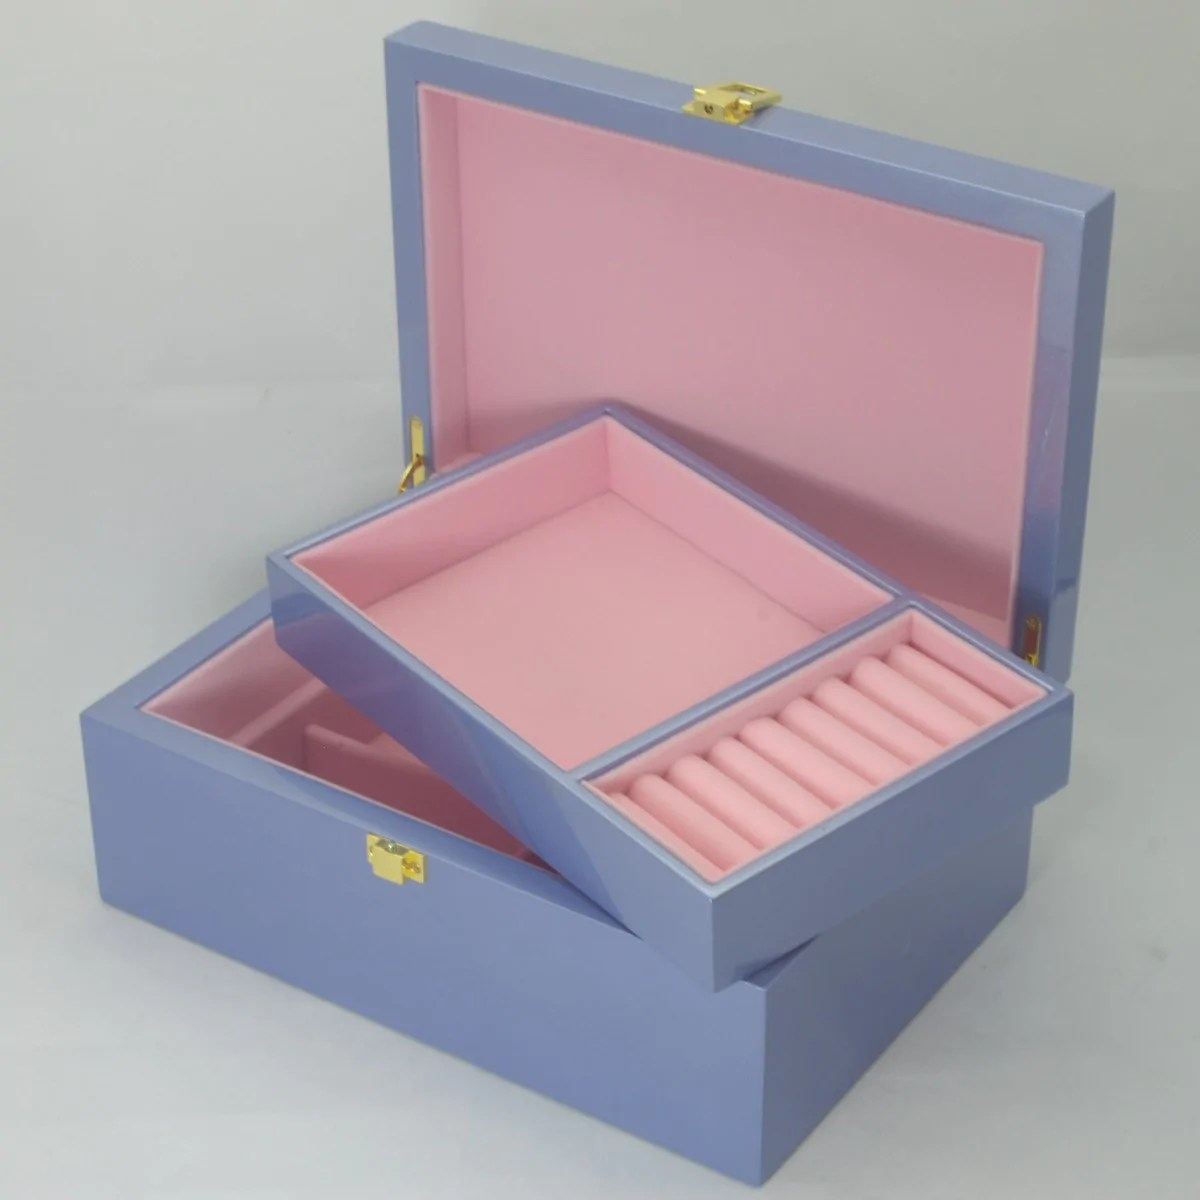 Jewellery Box Adelaide Buy Quality Jewellery Boxes Online My Treasure Box Australia